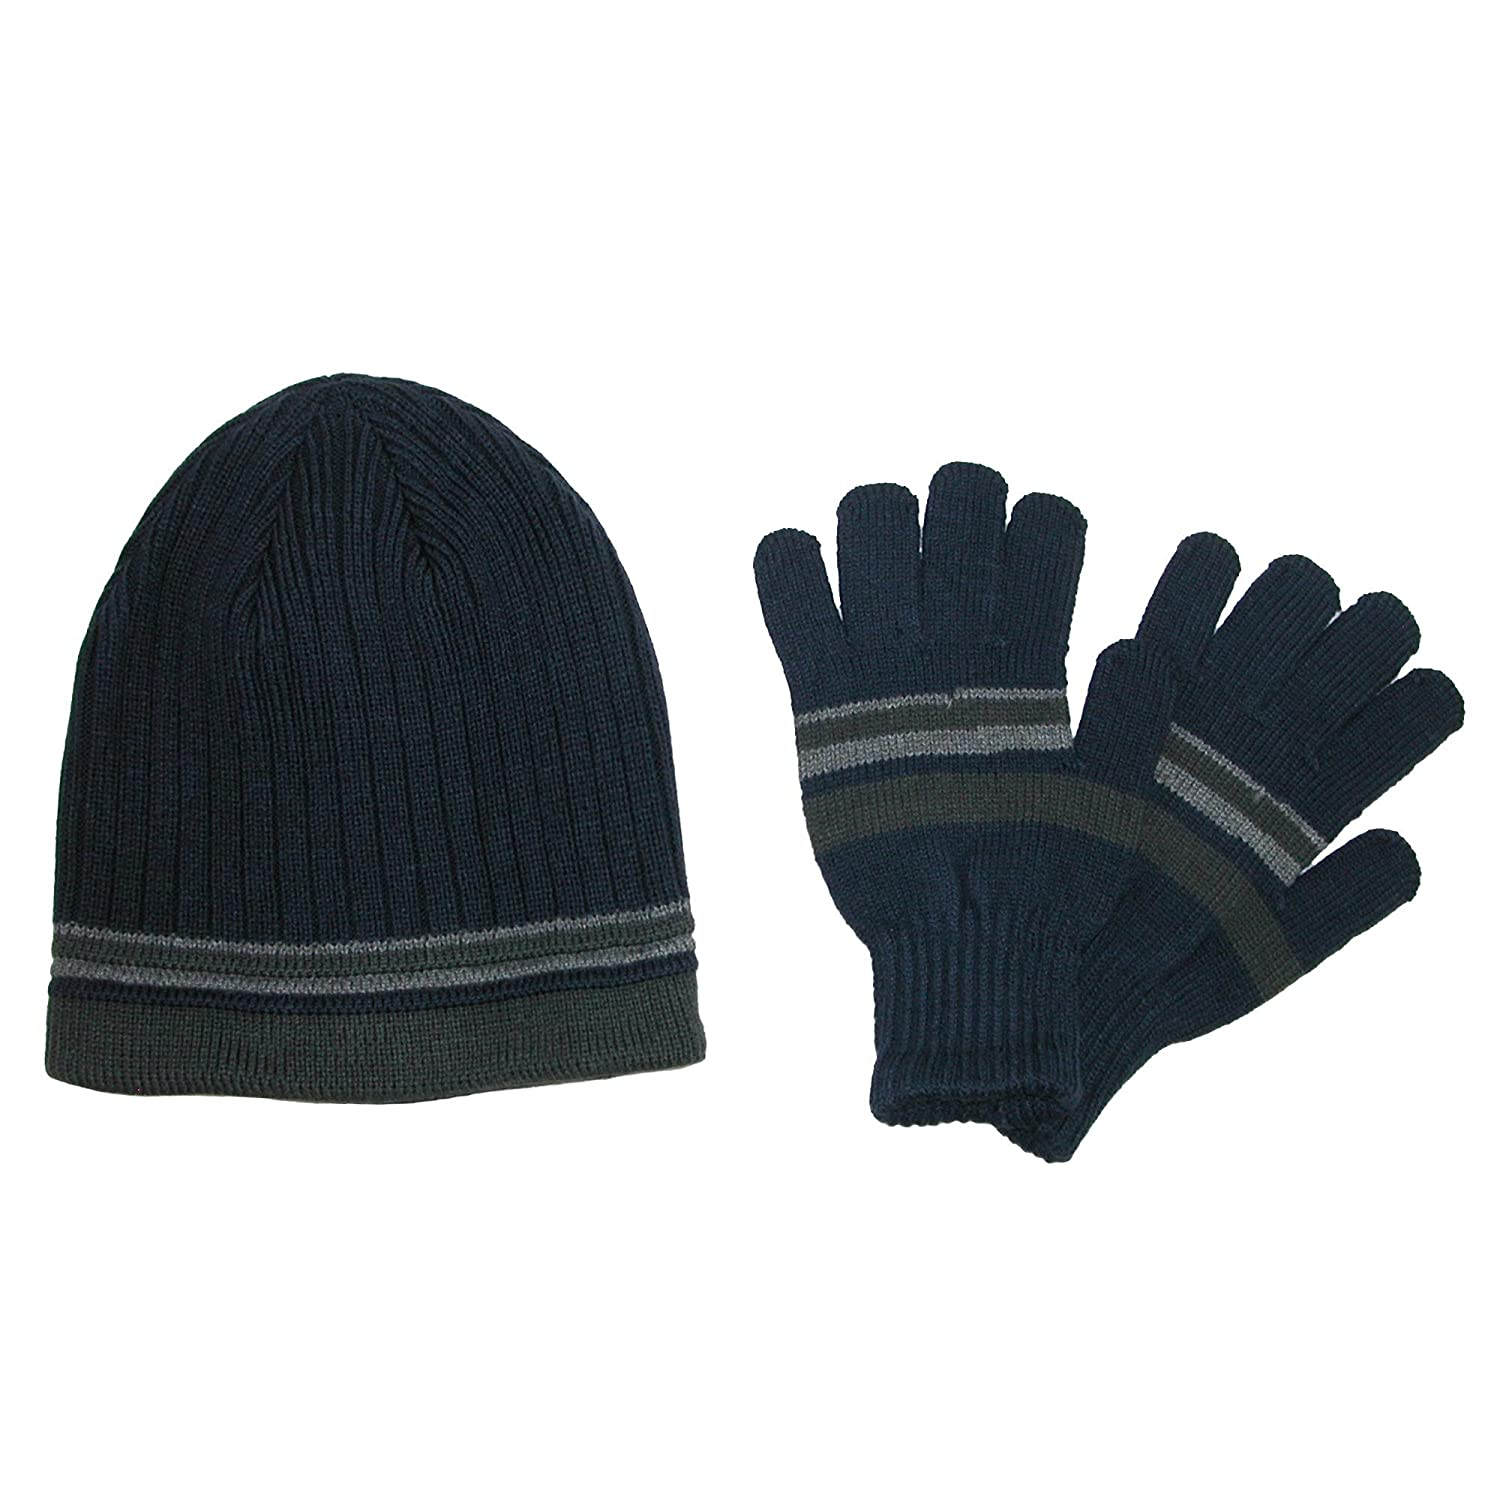 CTM Men's Knit Striped Beanie and Gloves Winter Set Black RG-K2213-BLK